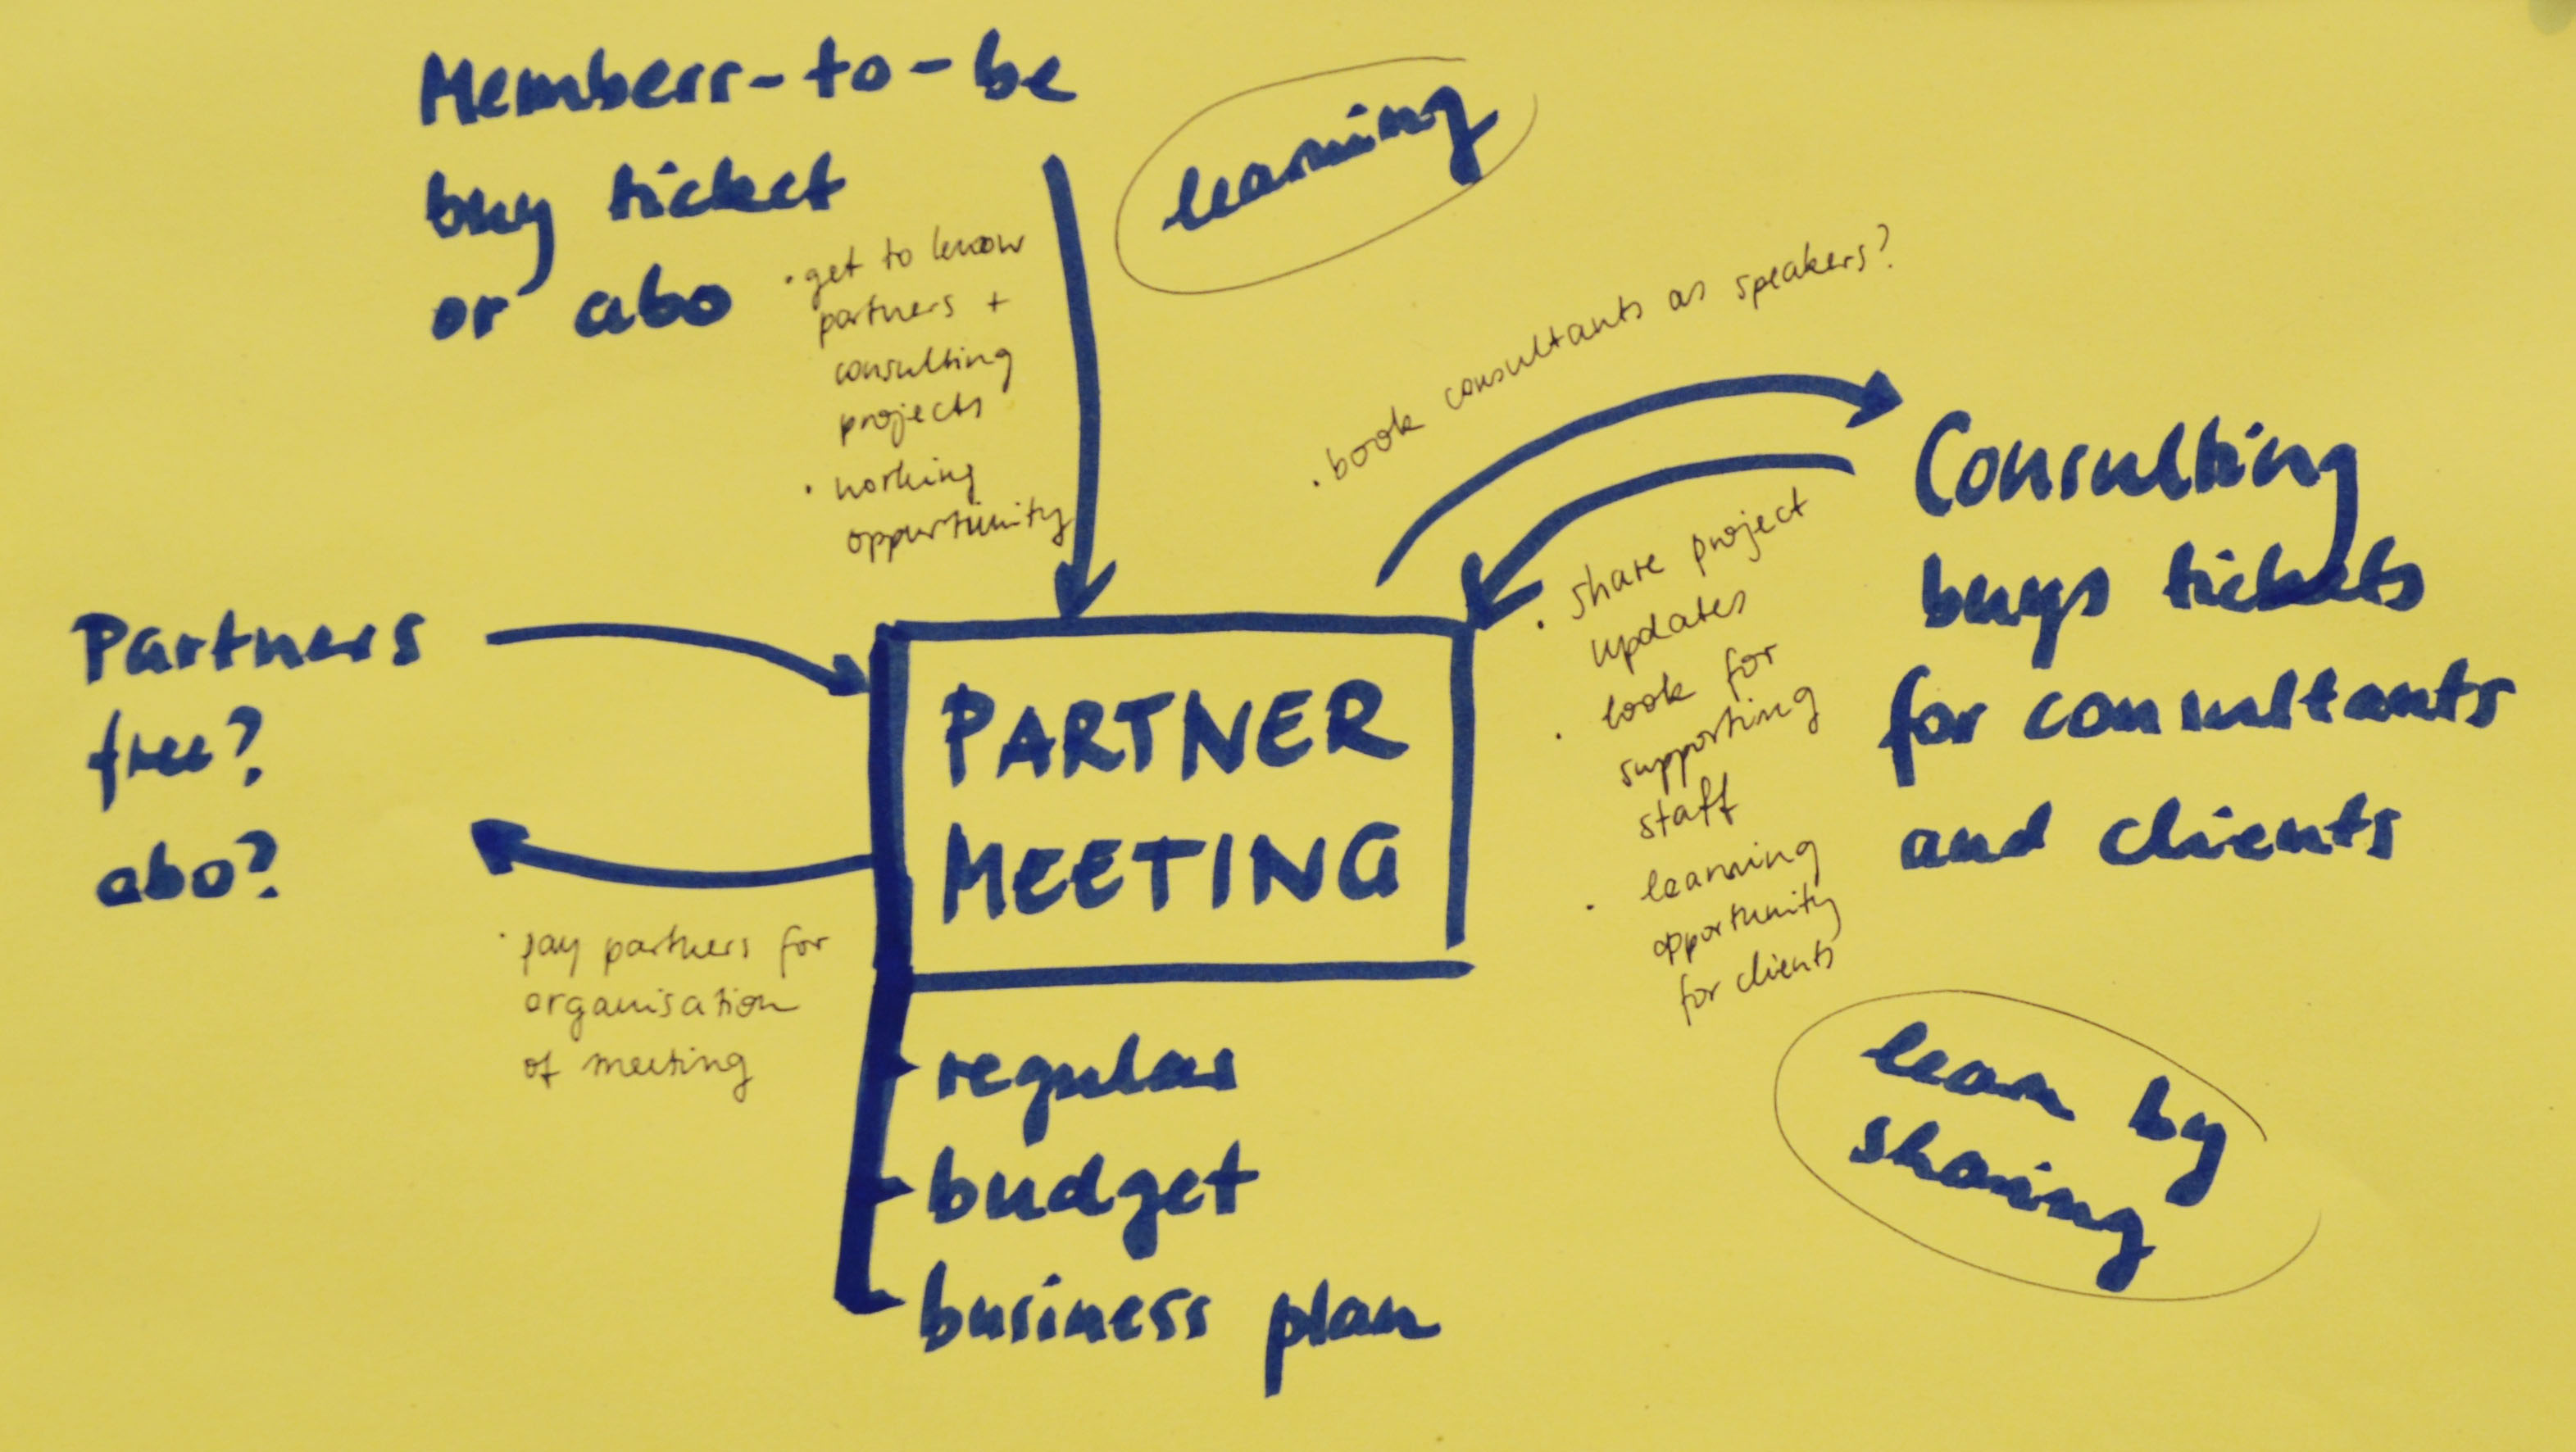 2_partner_meetings